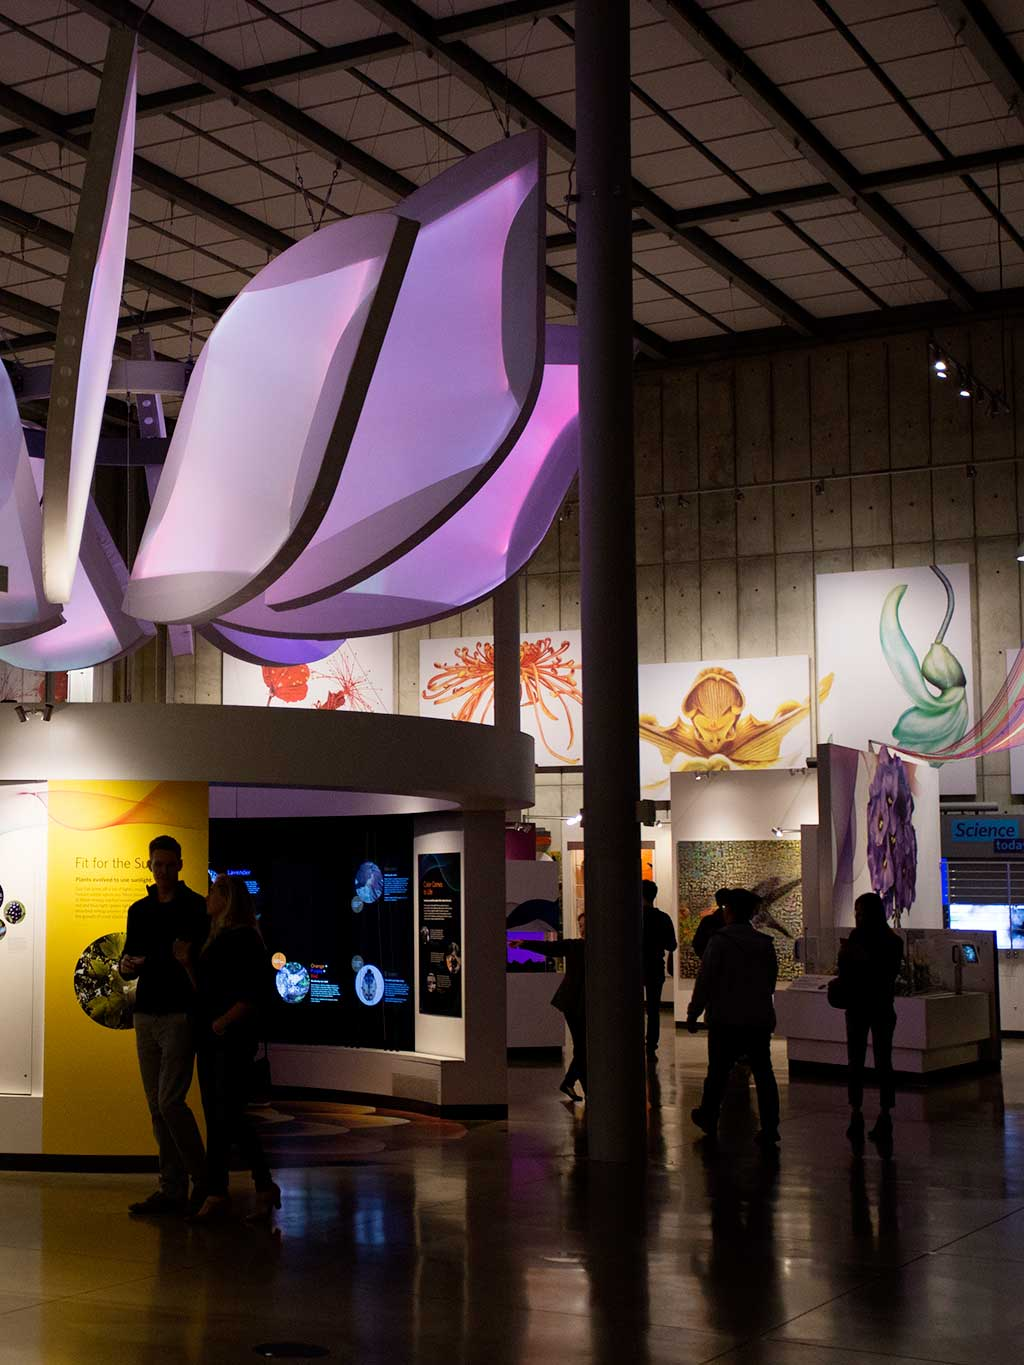 drive-swim-fly-california-academy-of-sciences-san-francisco-nitelife-adult-museum-night-color-of-life